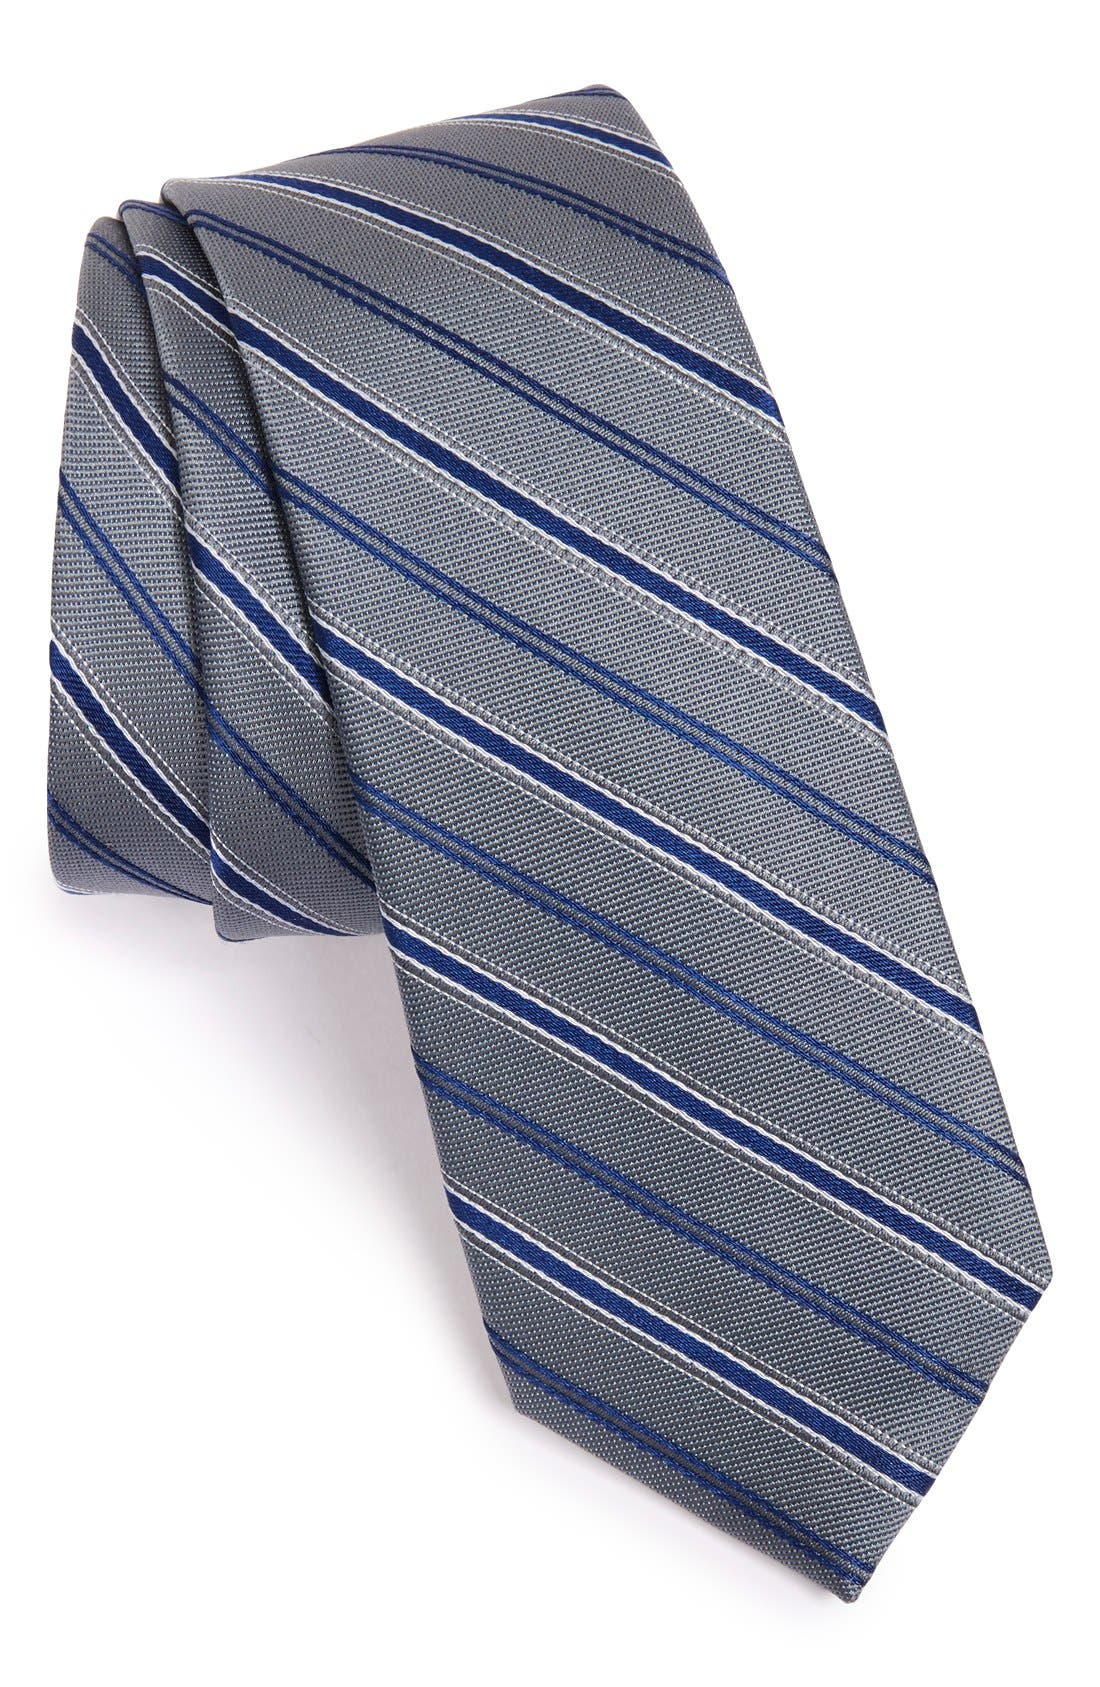 Alternate Image 1 Selected - Calibrate Woven Silk Tie